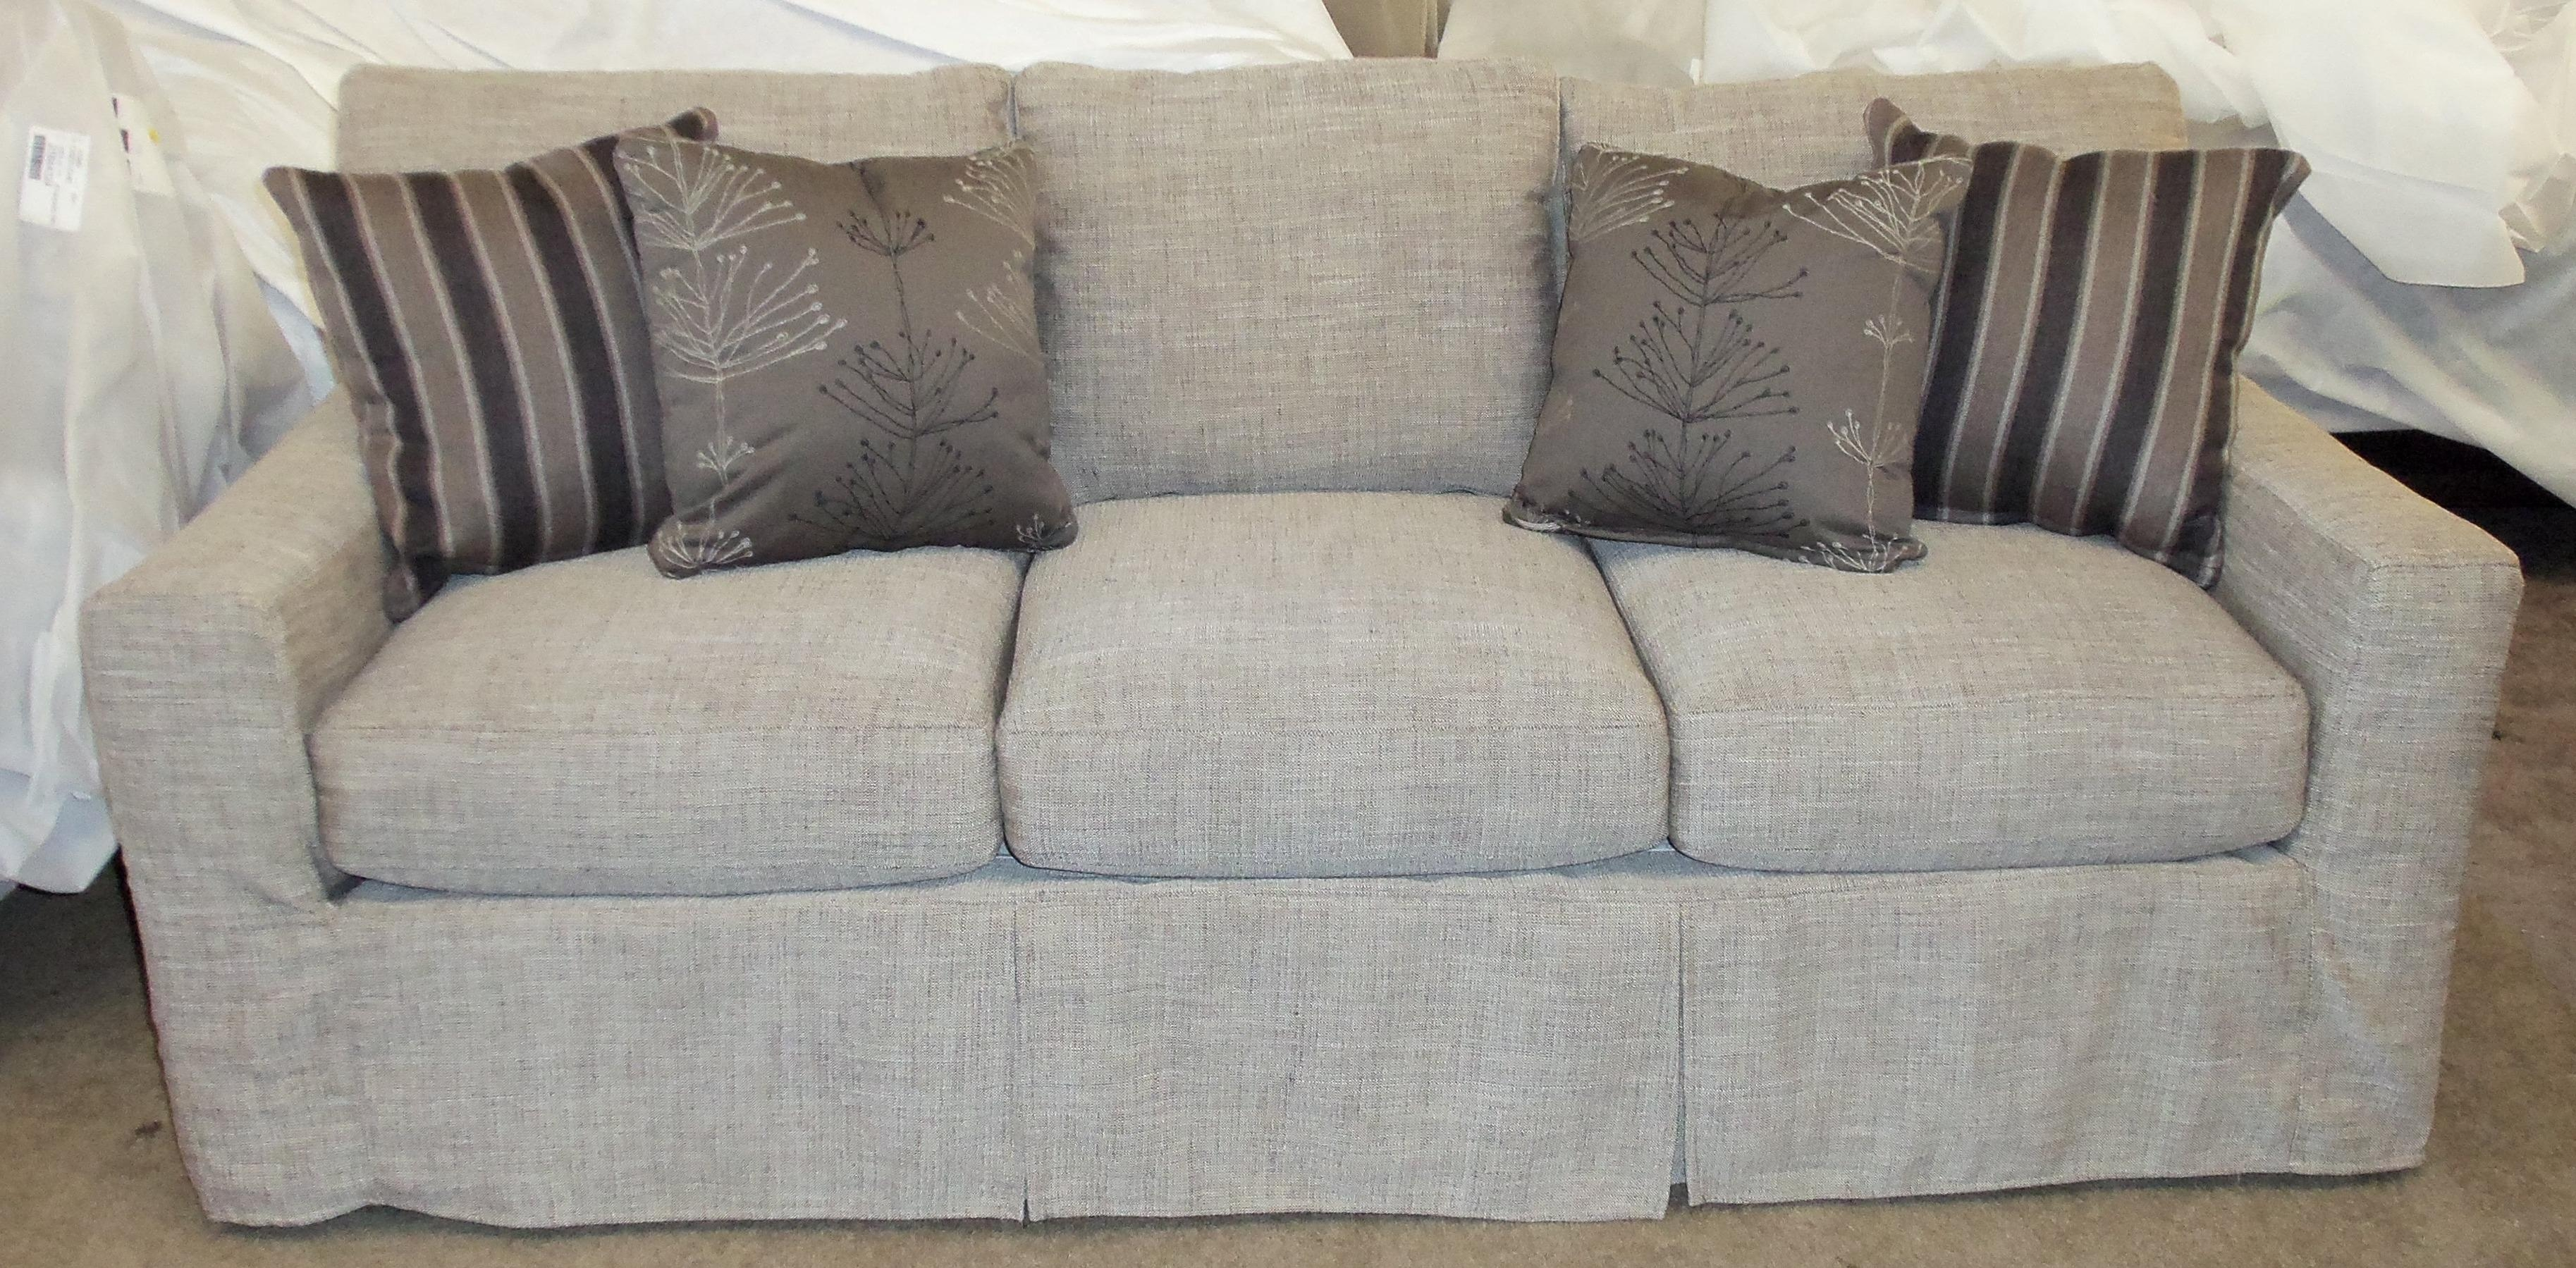 Furniture: Slipcovers For Couch | Sofa Cushion Covers | Regarding Slip Covers For Love Seats (View 8 of 20)